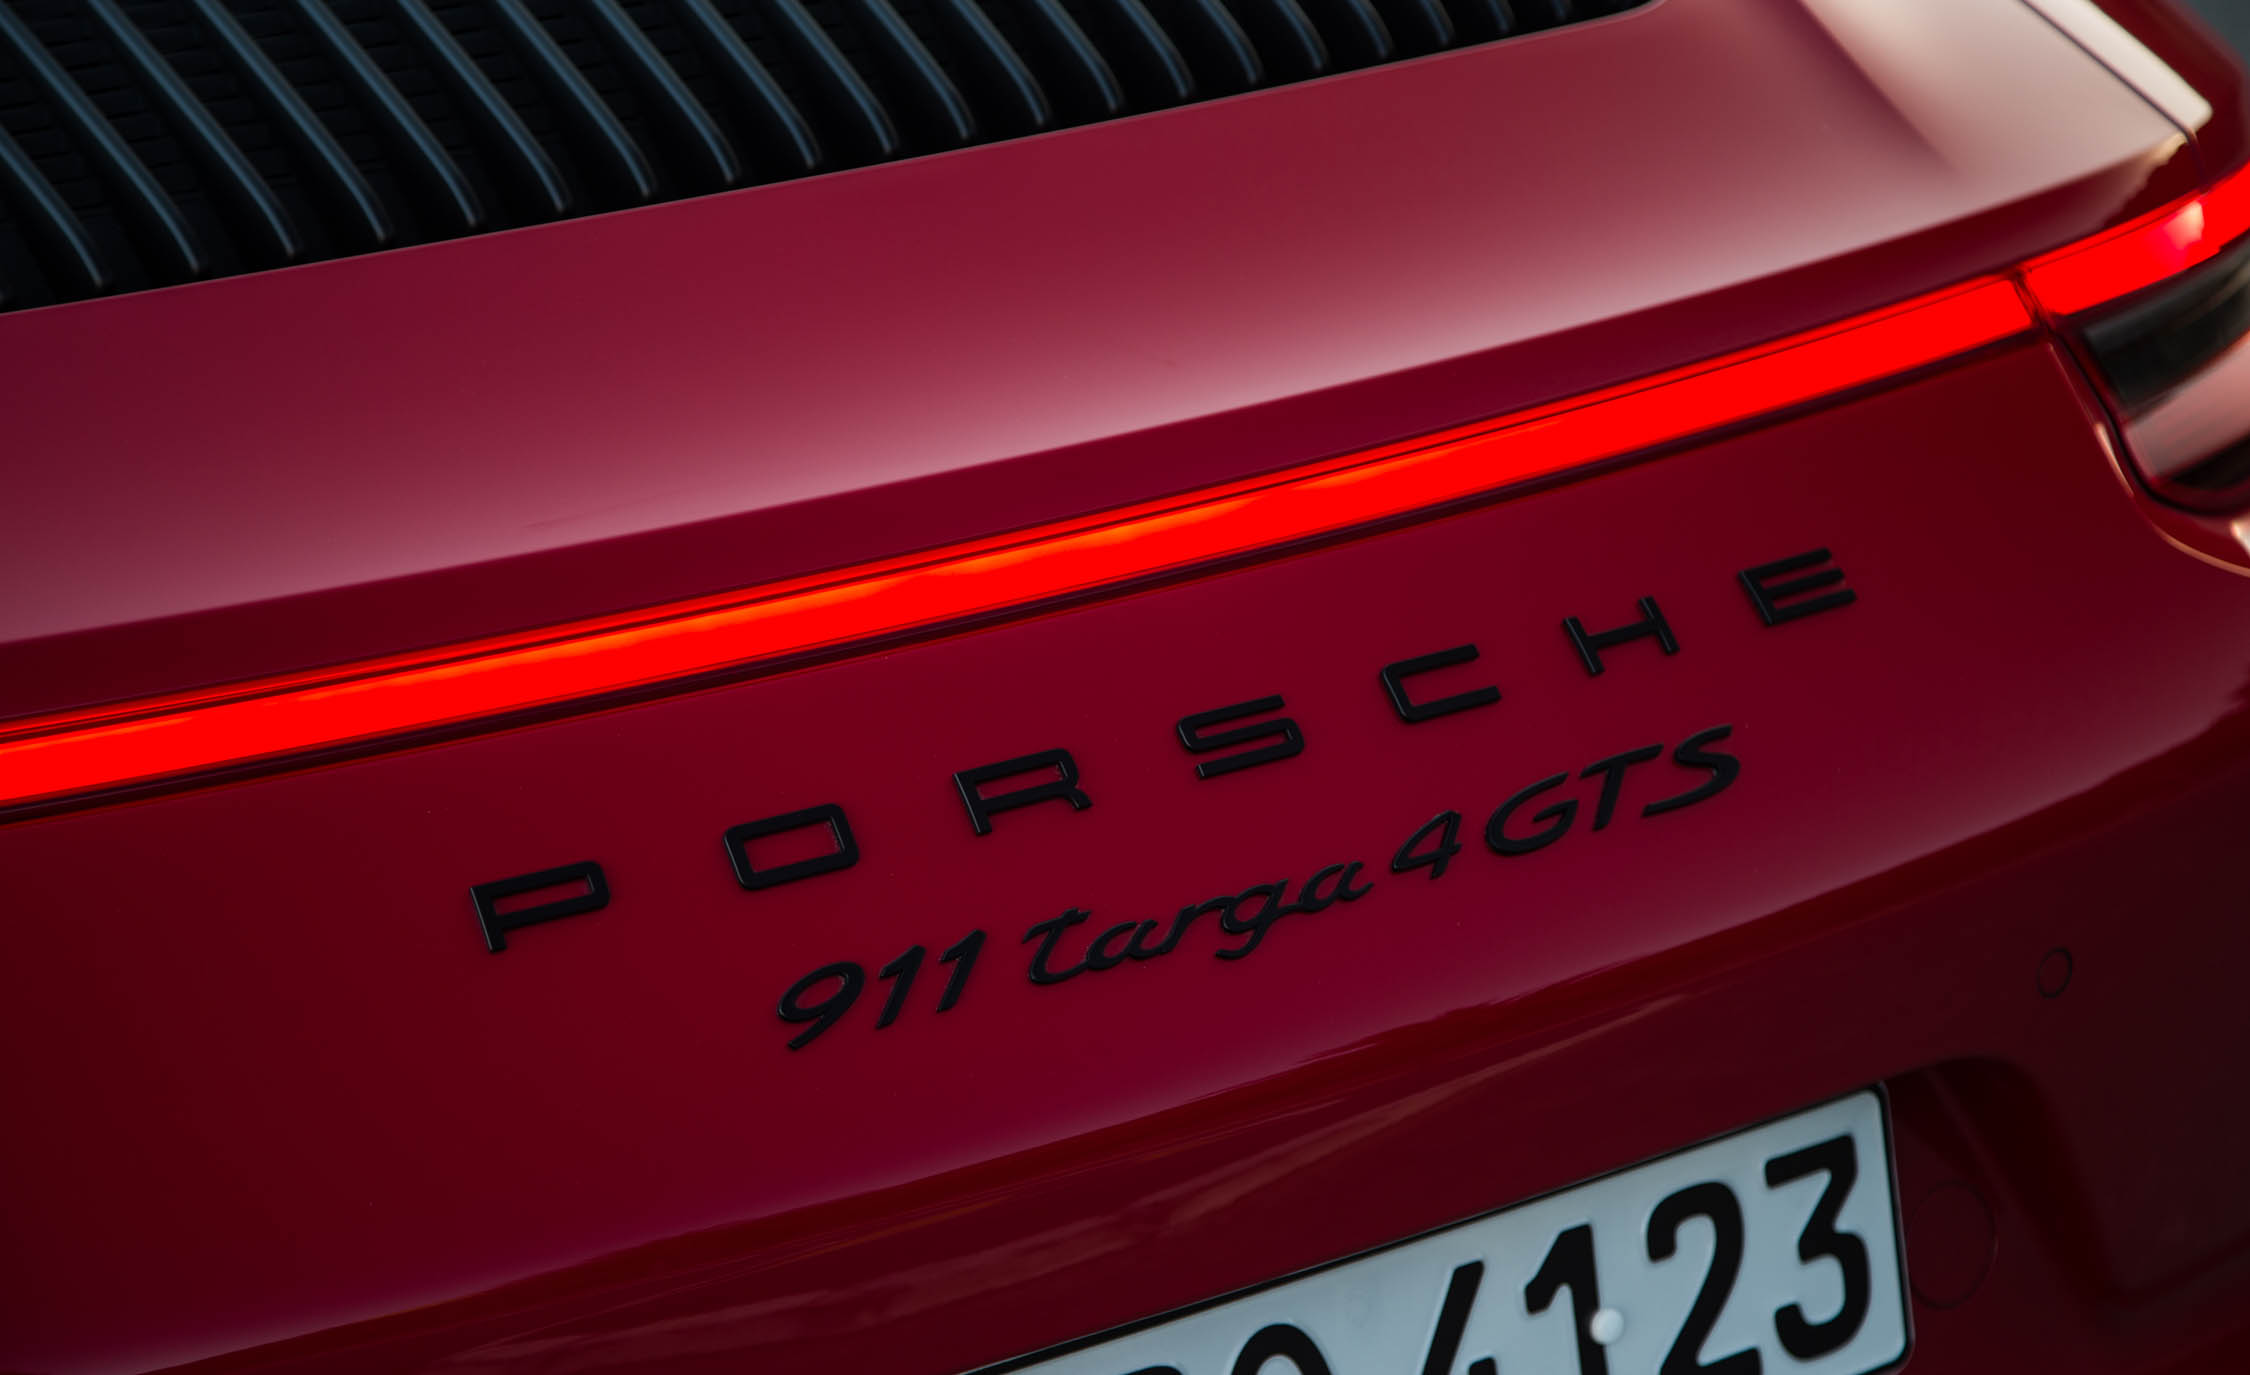 2017 Porsche 911 Targa 4 GTS Red Exterior View Rear Badge (Photo 80 of 97)